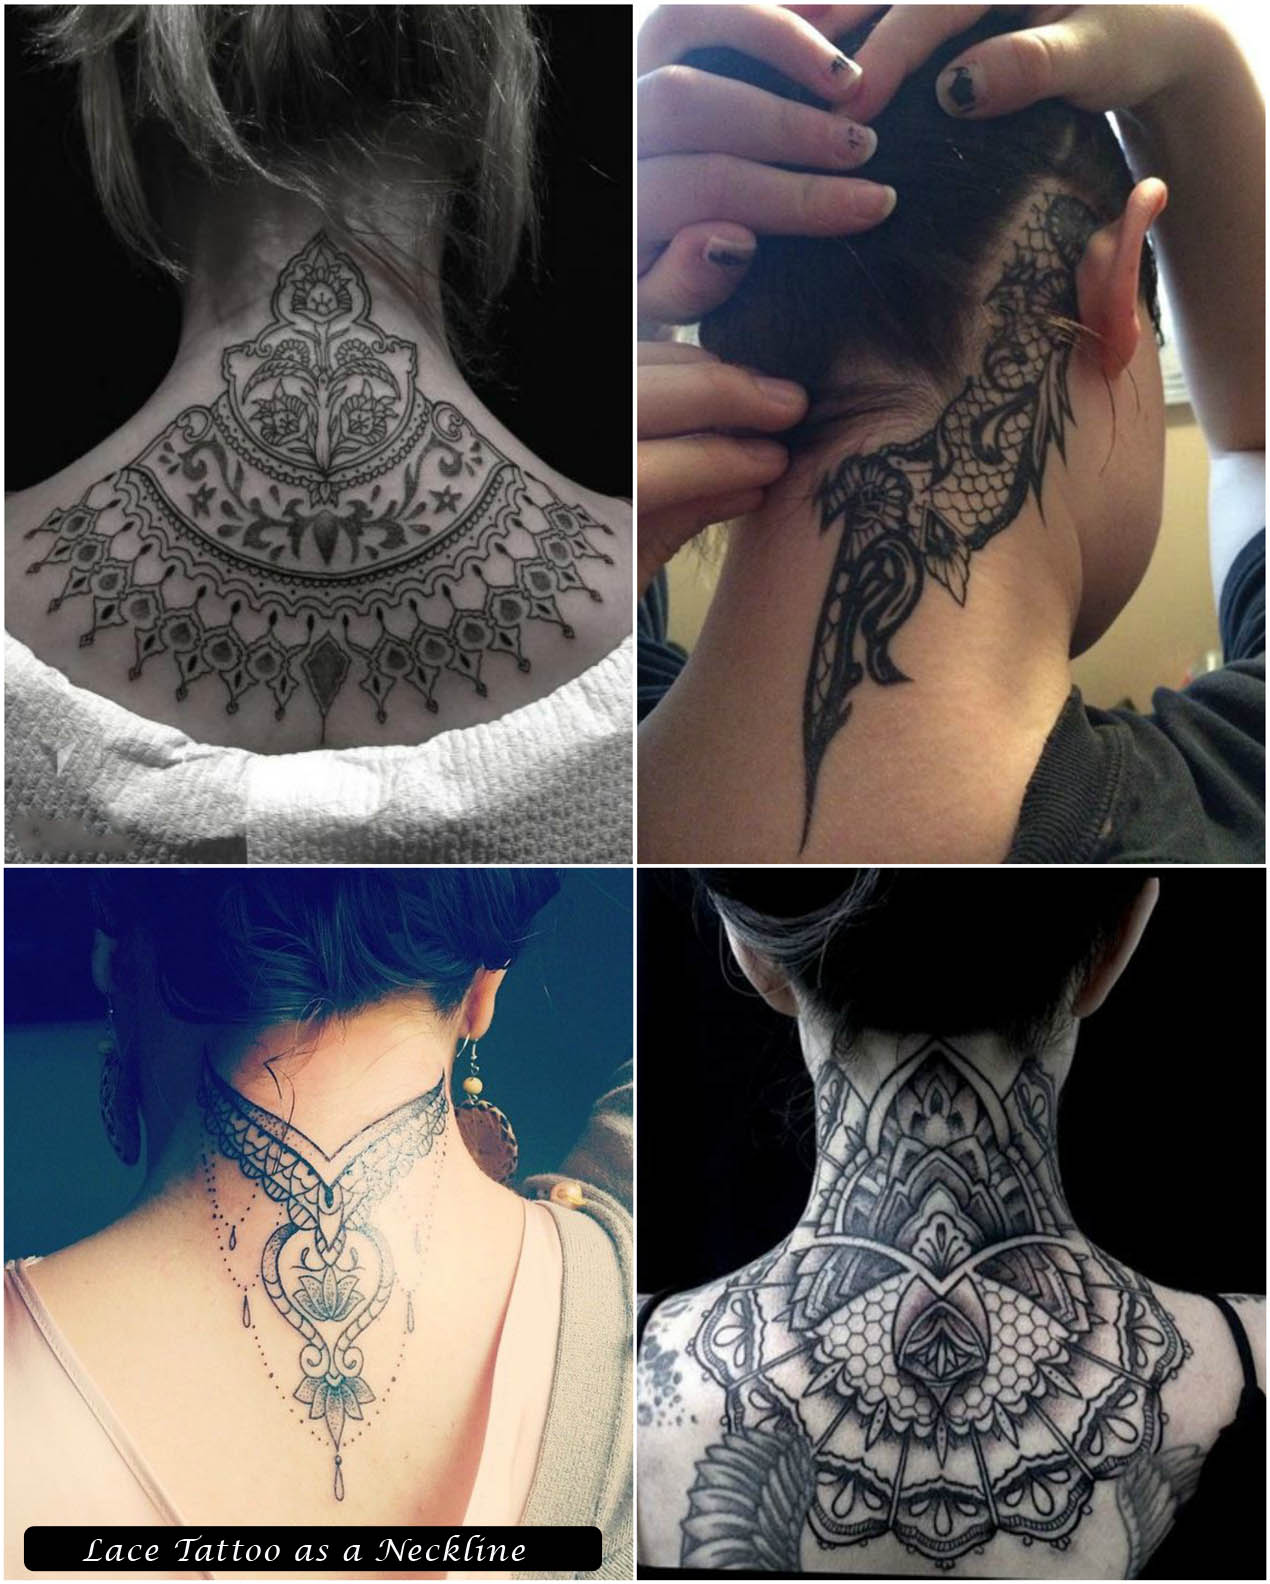 Lace Tattoo as a Neckline